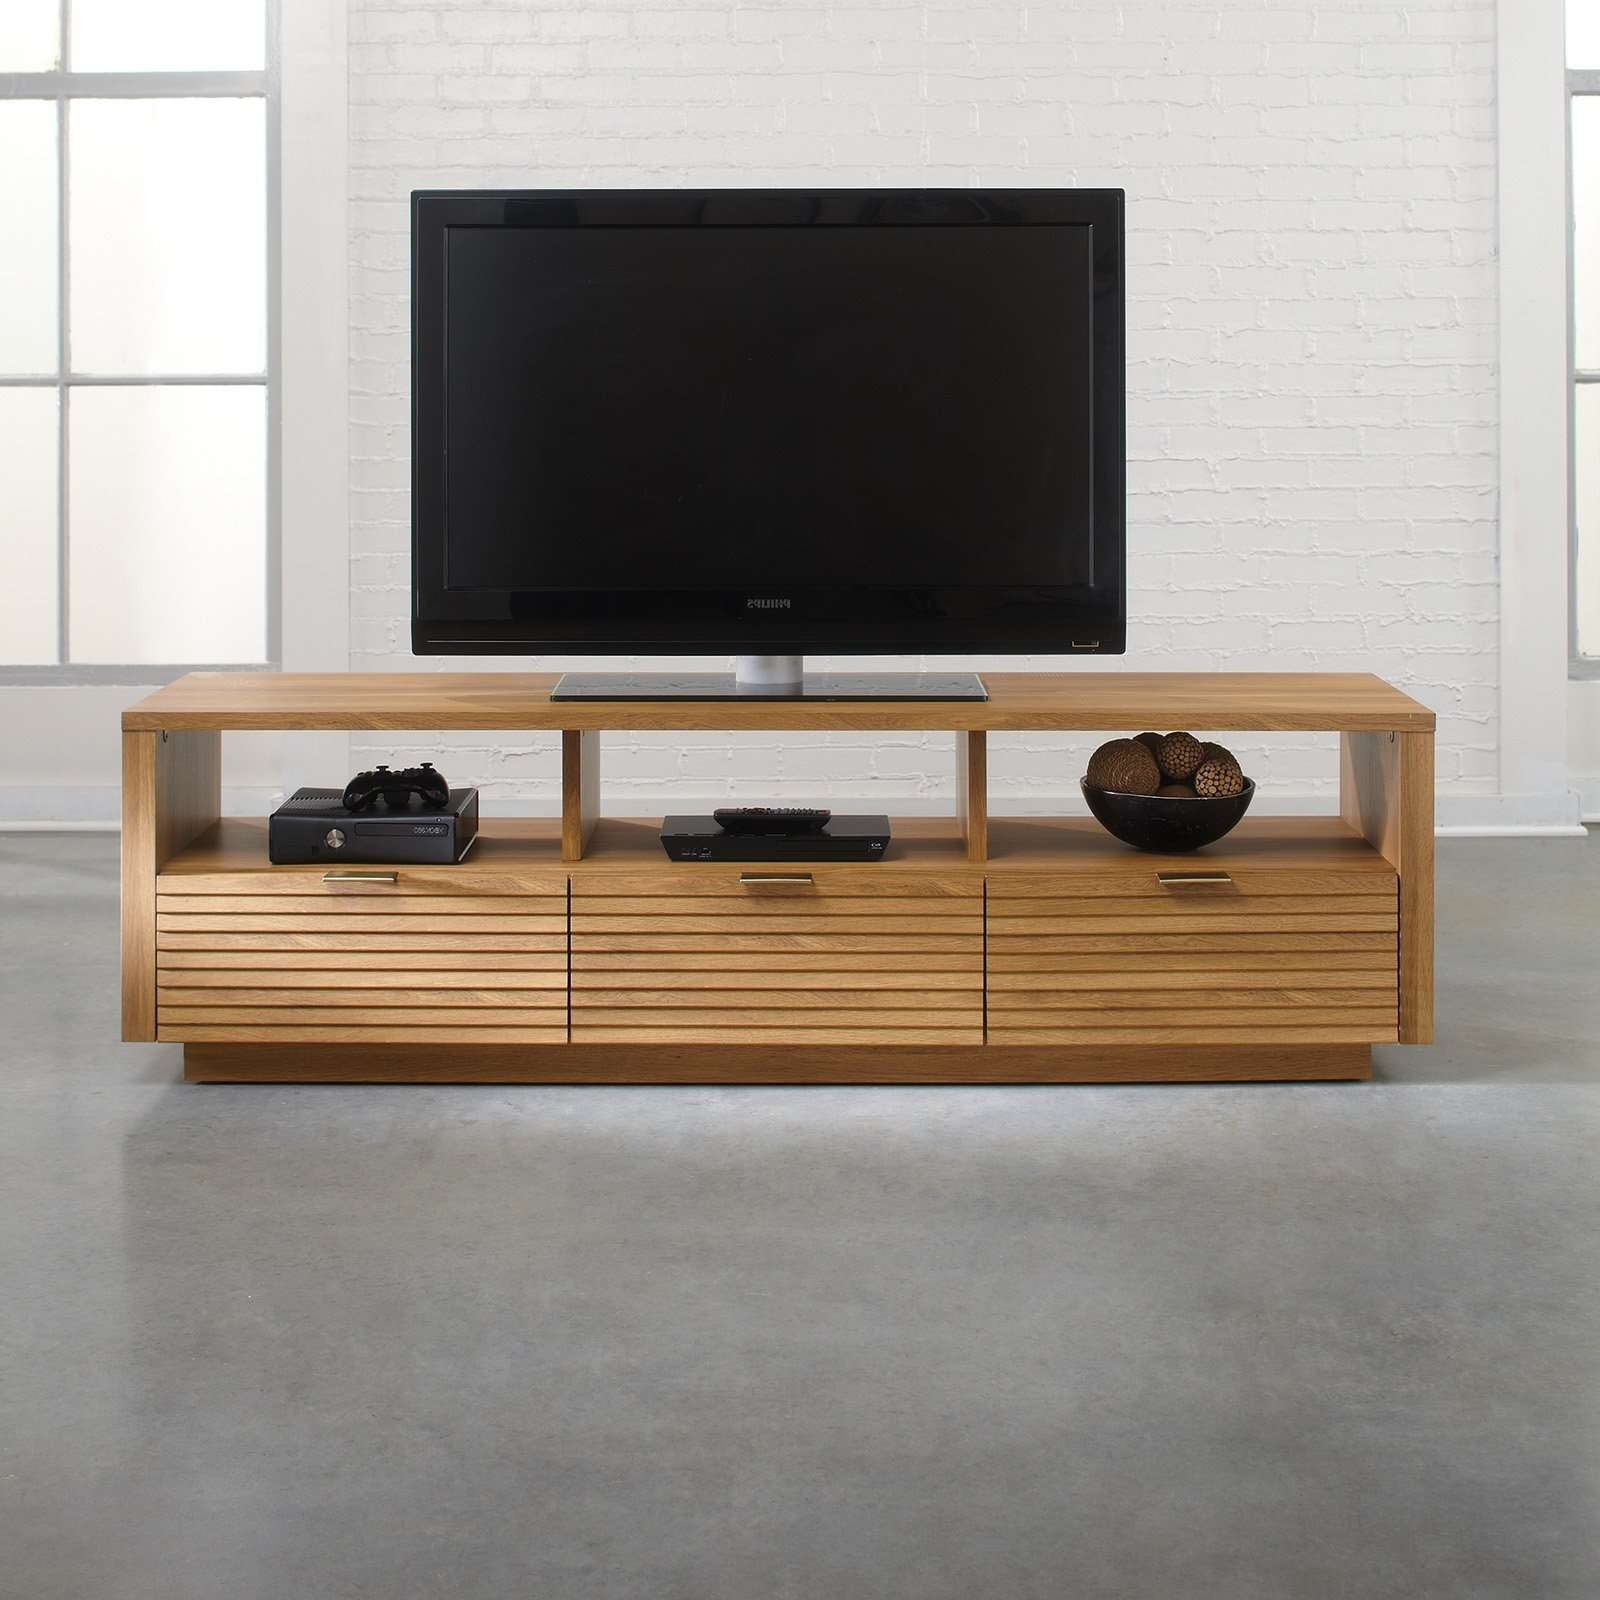 Sauder Soft Modern Entertainment Credenza – Pale Oak | Hayneedle Within Contemporary Oak Tv Stands (View 6 of 15)